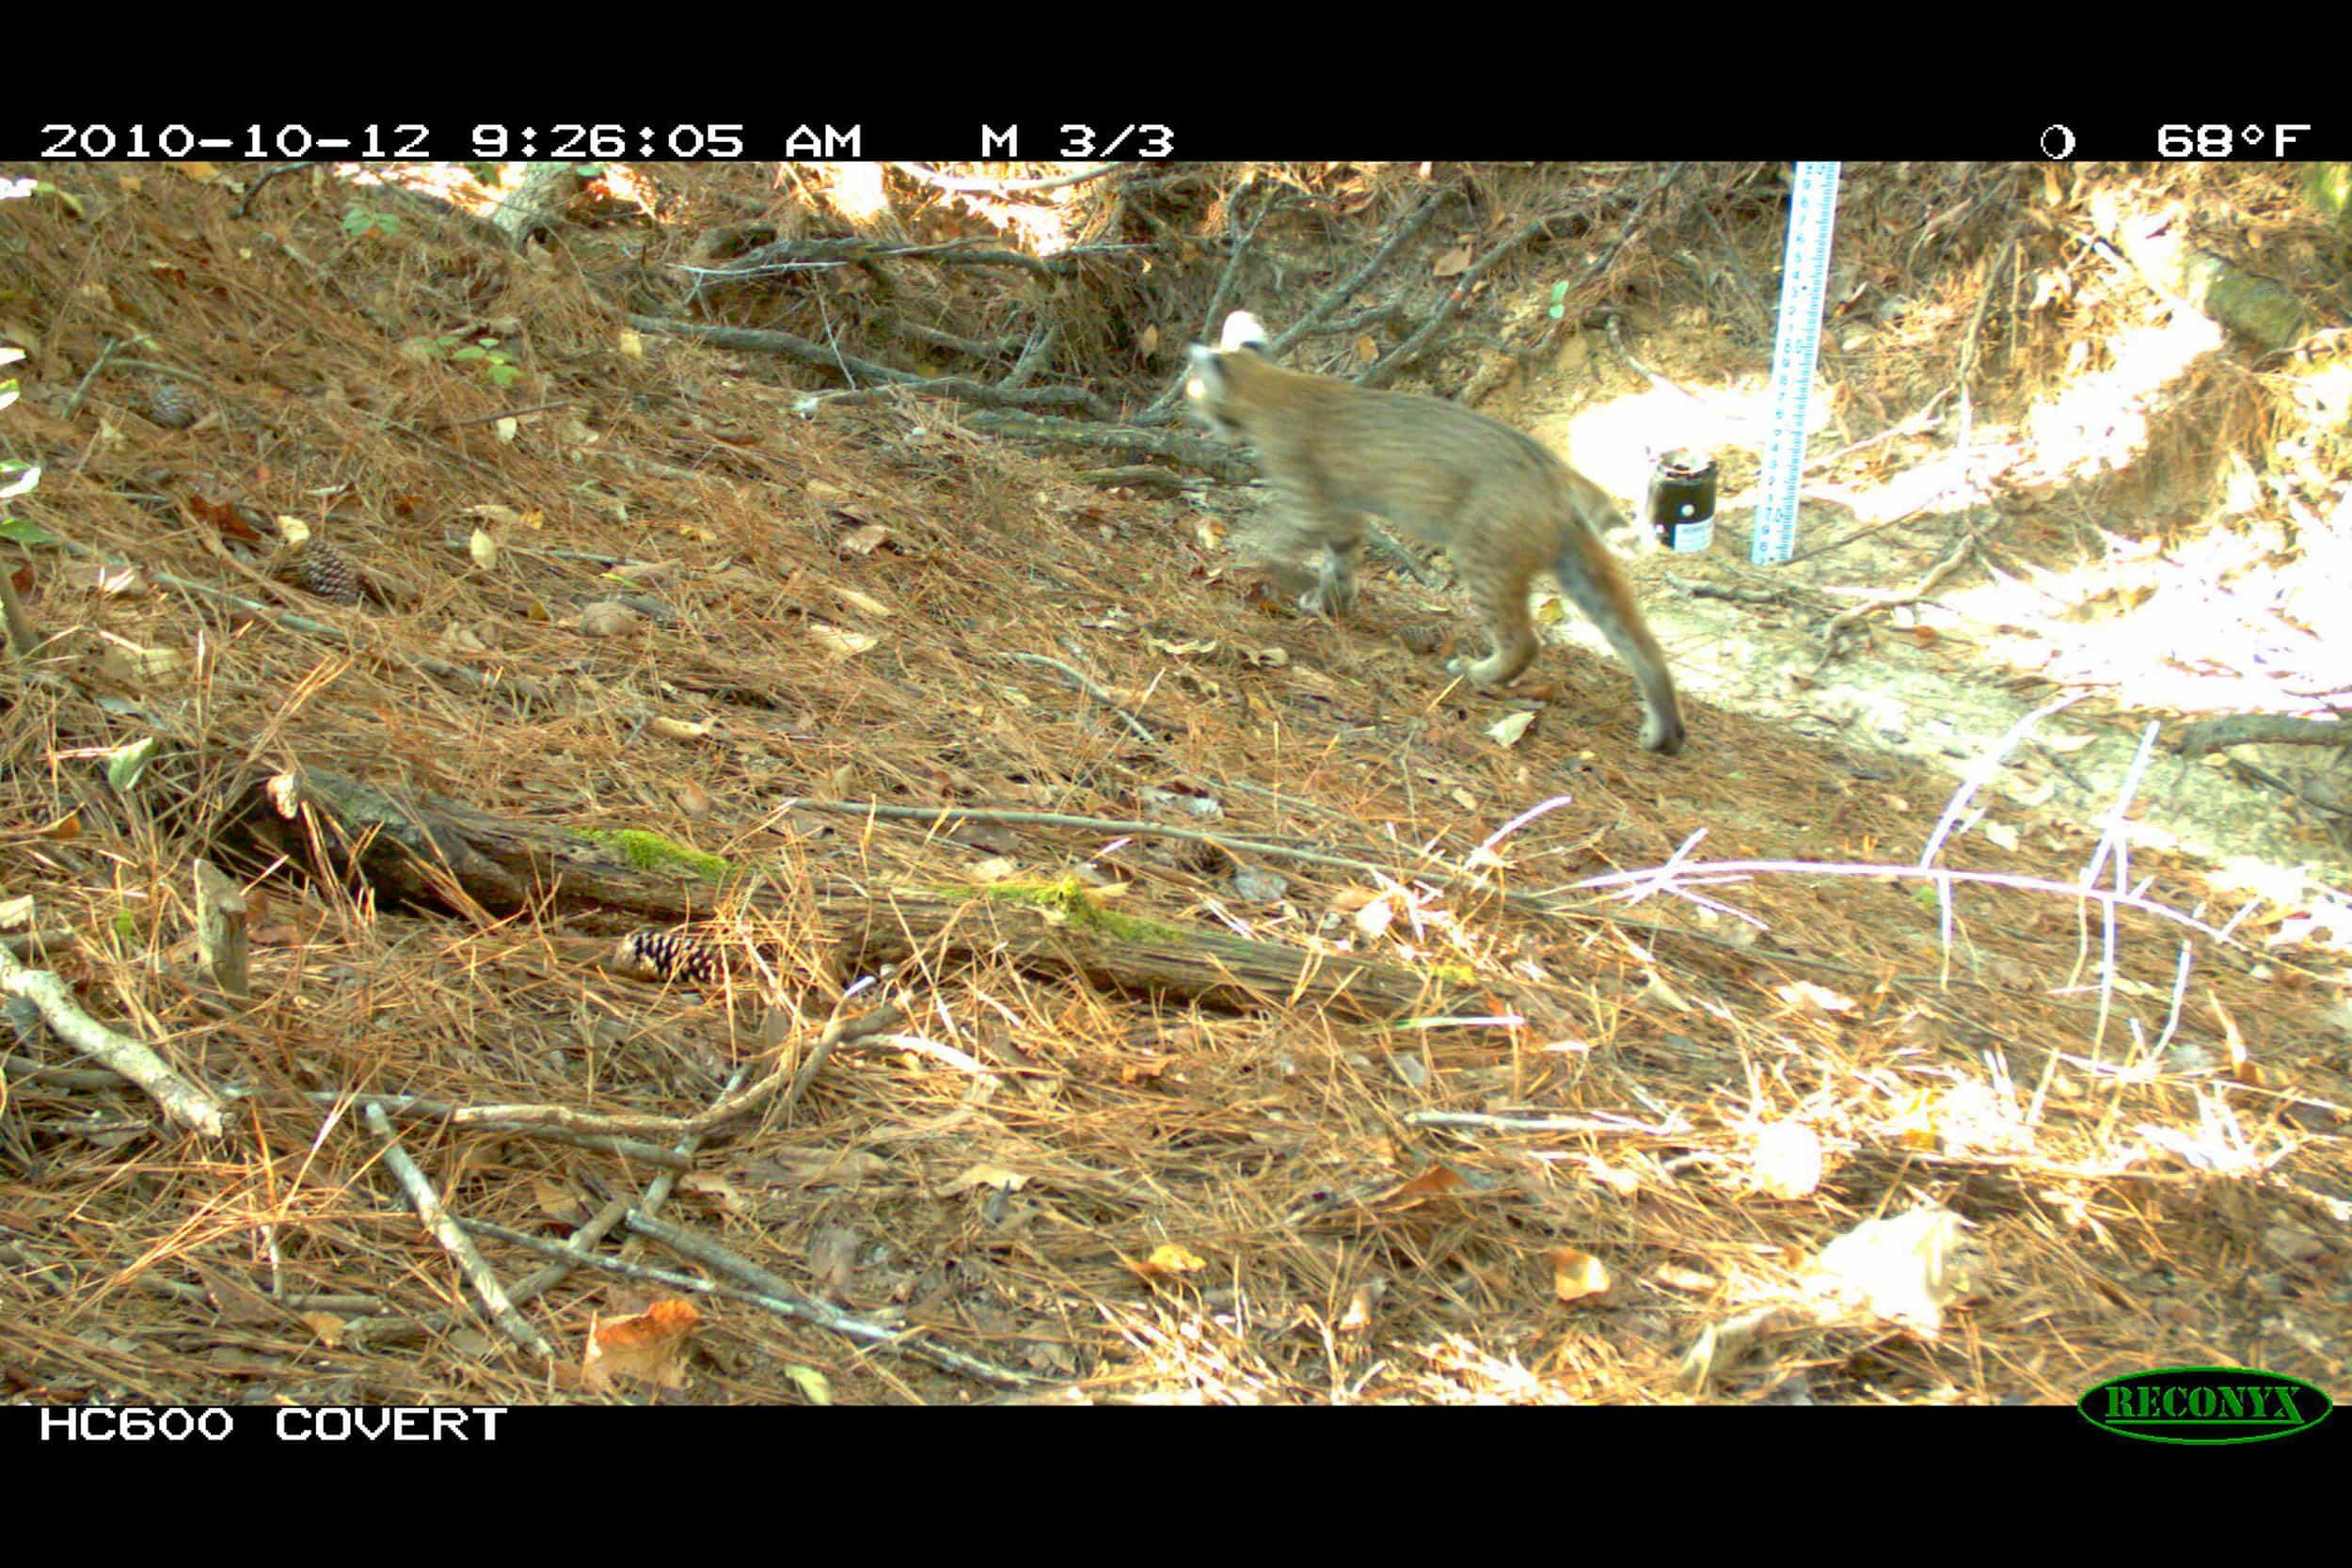 Bobcat (Lynx rufus) - The presence of upper level predators such as coyotes, bobcats, and owls suggests that numerous forage species are present in sufficient numbers to support the resident carnivore's diet.